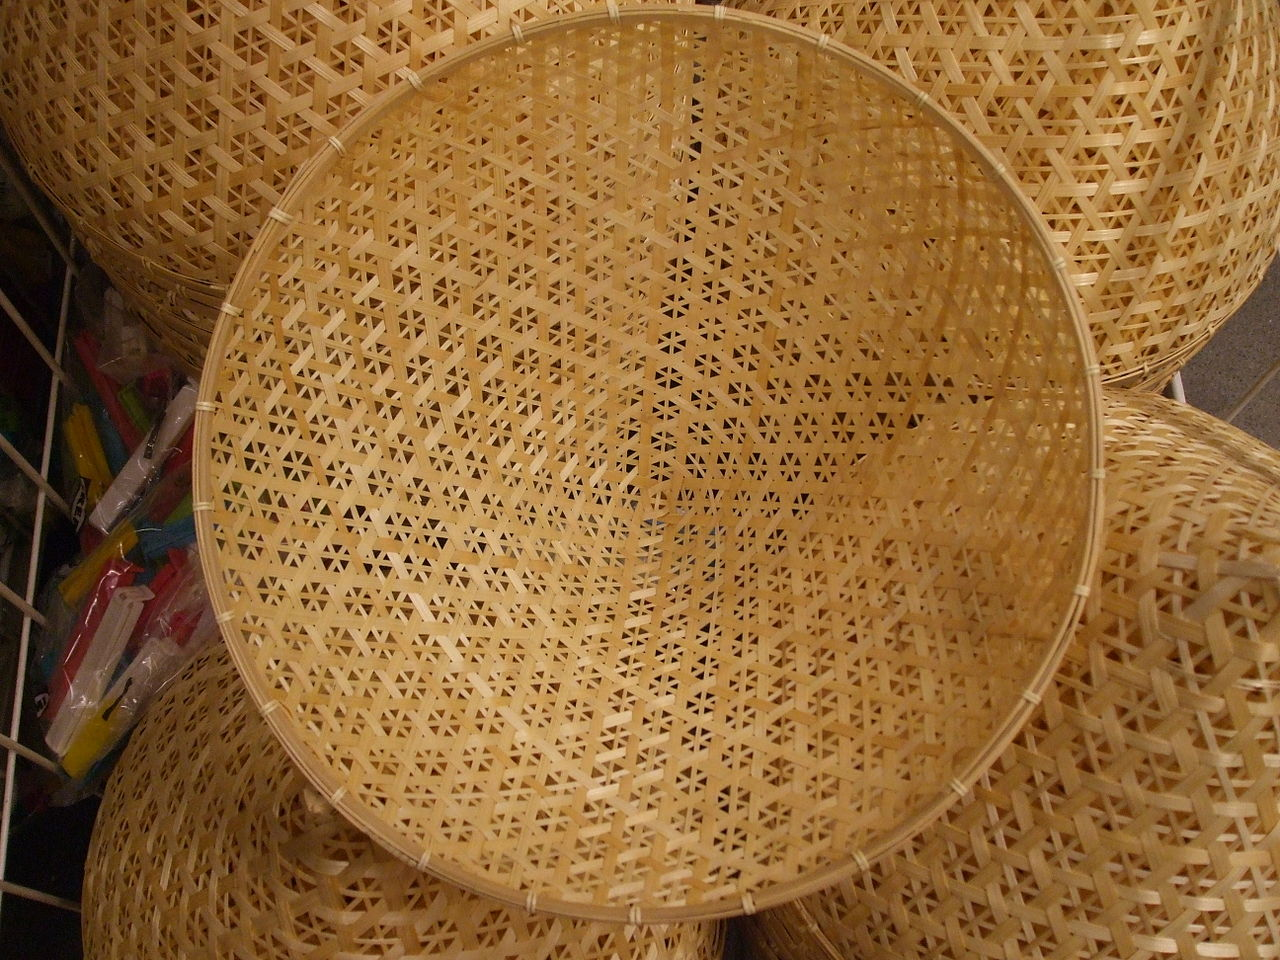 an item made from rice straw by StromBer Wikimedia Commons